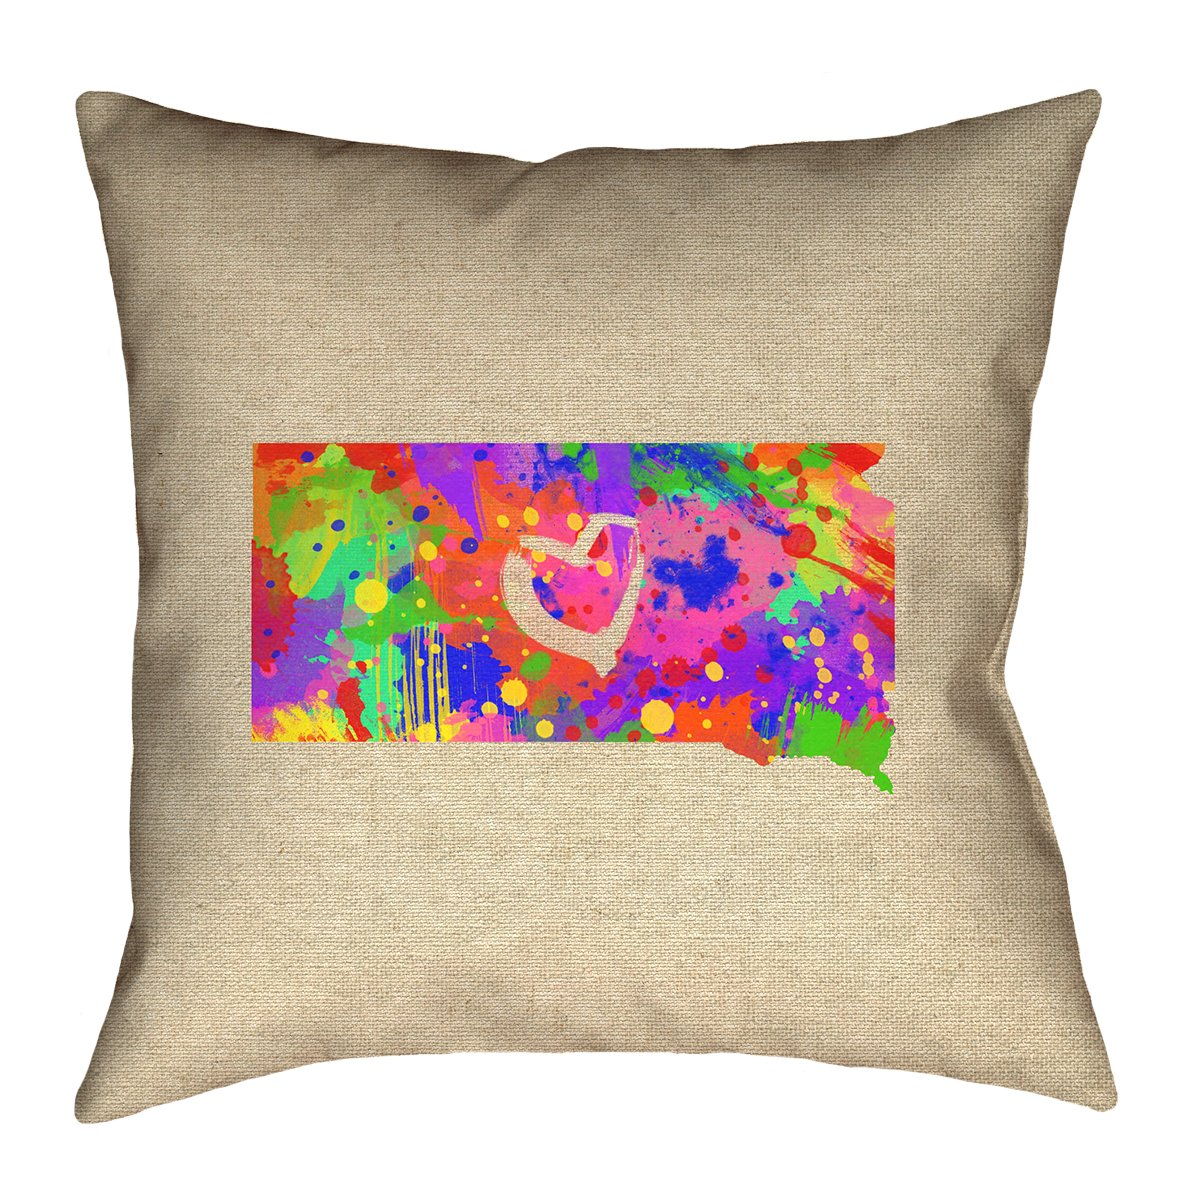 ArtVerse Katelyn Smith South Dakota Love Watercolor 26 x 26 Pillow-Spun Polyester Double Sided Print with Concealed Zipper /& Insert